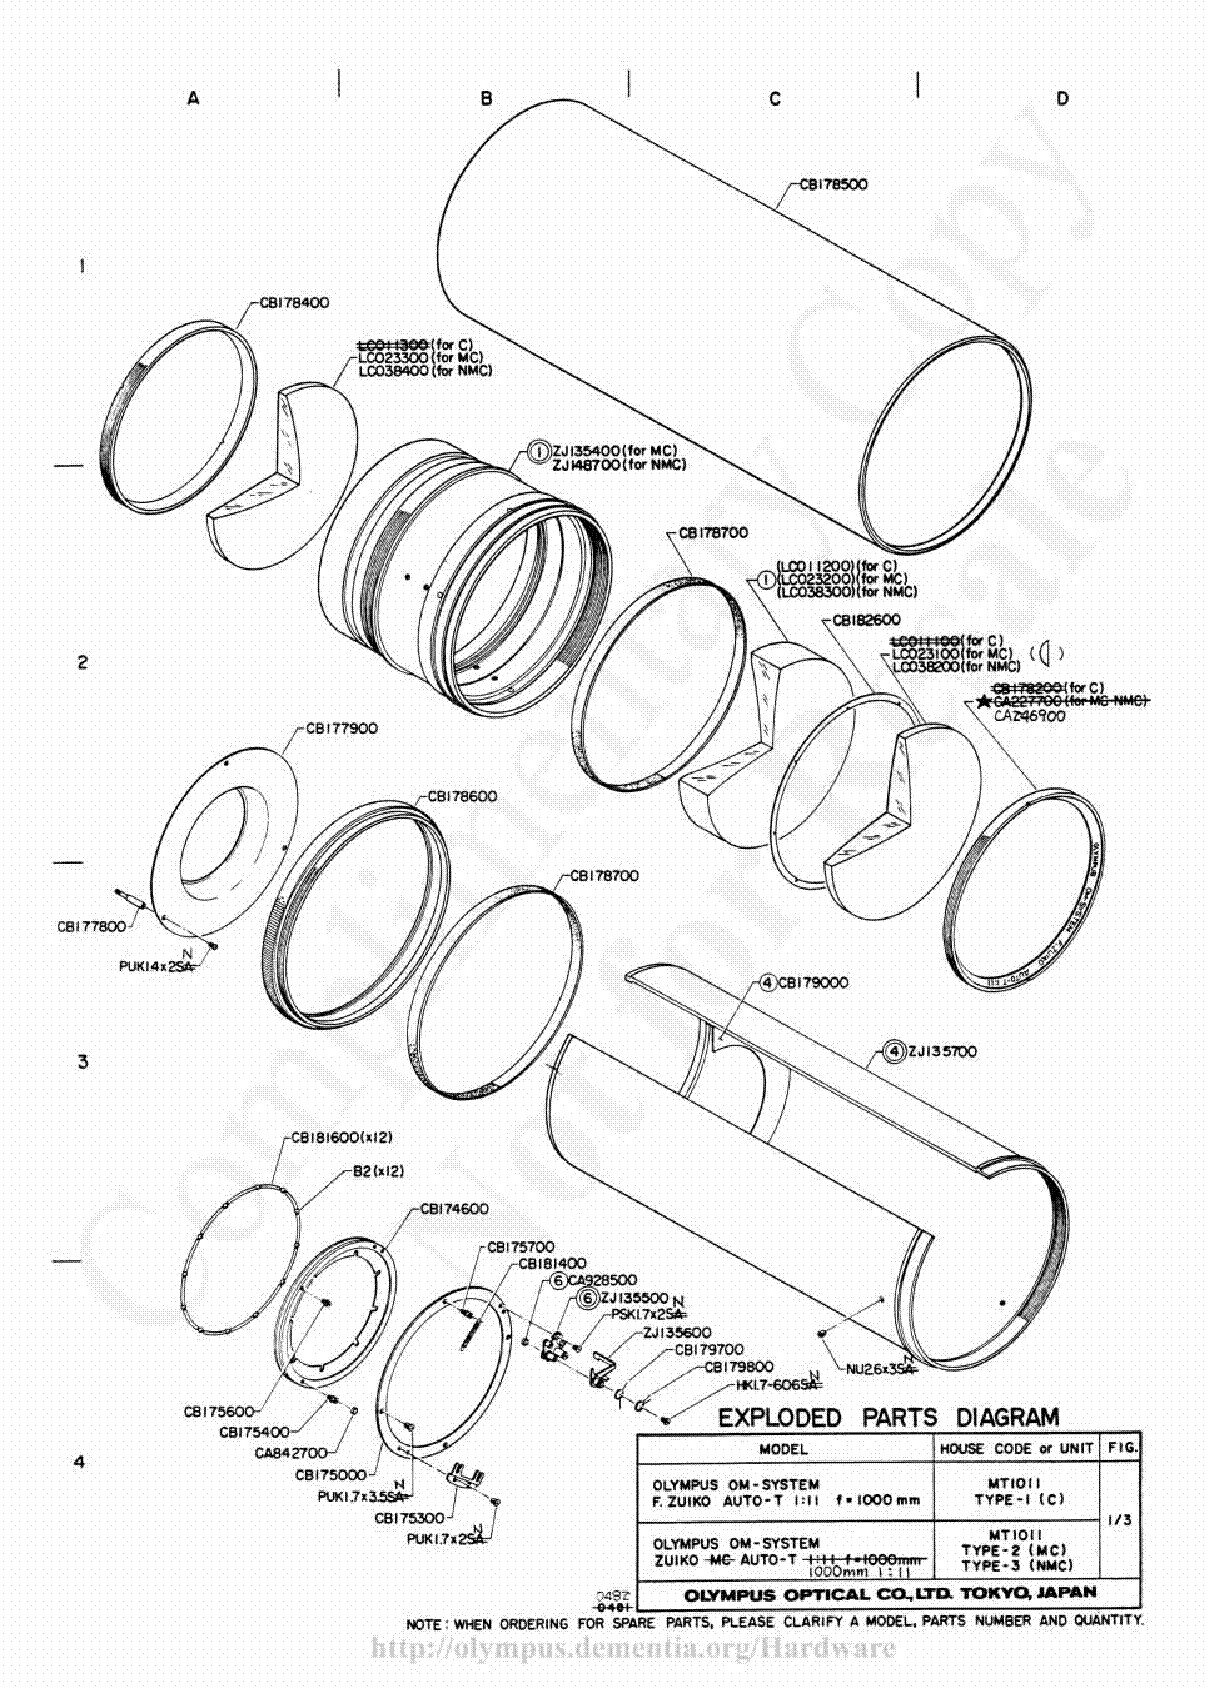 OLYMPUS 1000MM F11 EXPLODED PARTS DIAGRAM Service Manual